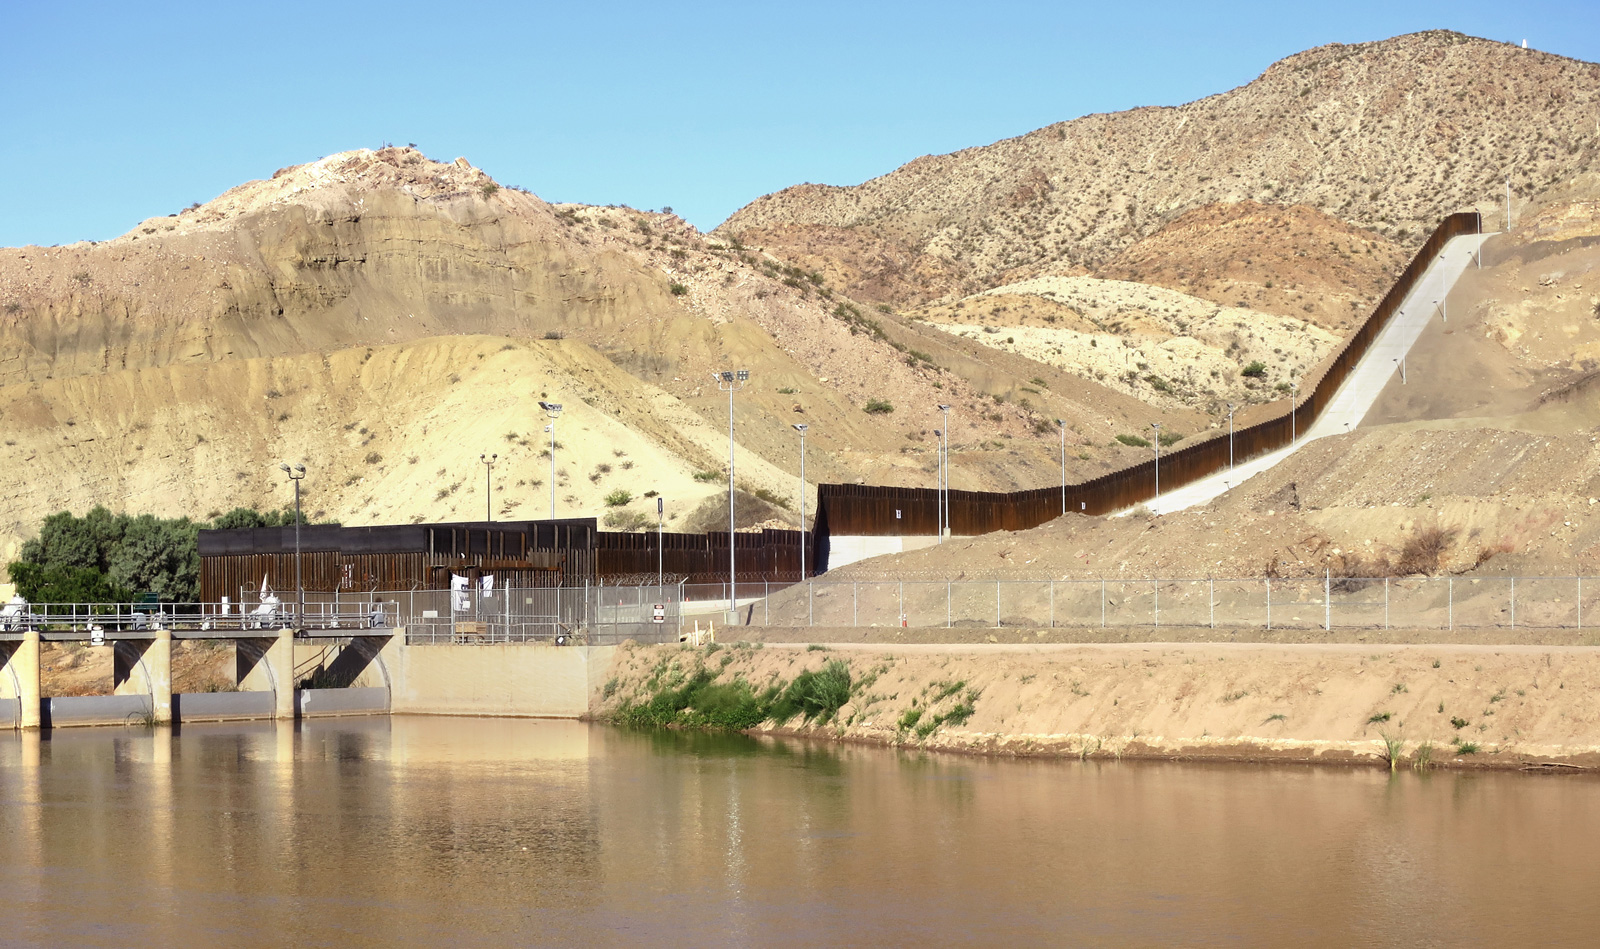 A border wall running along hills and a river in Texas